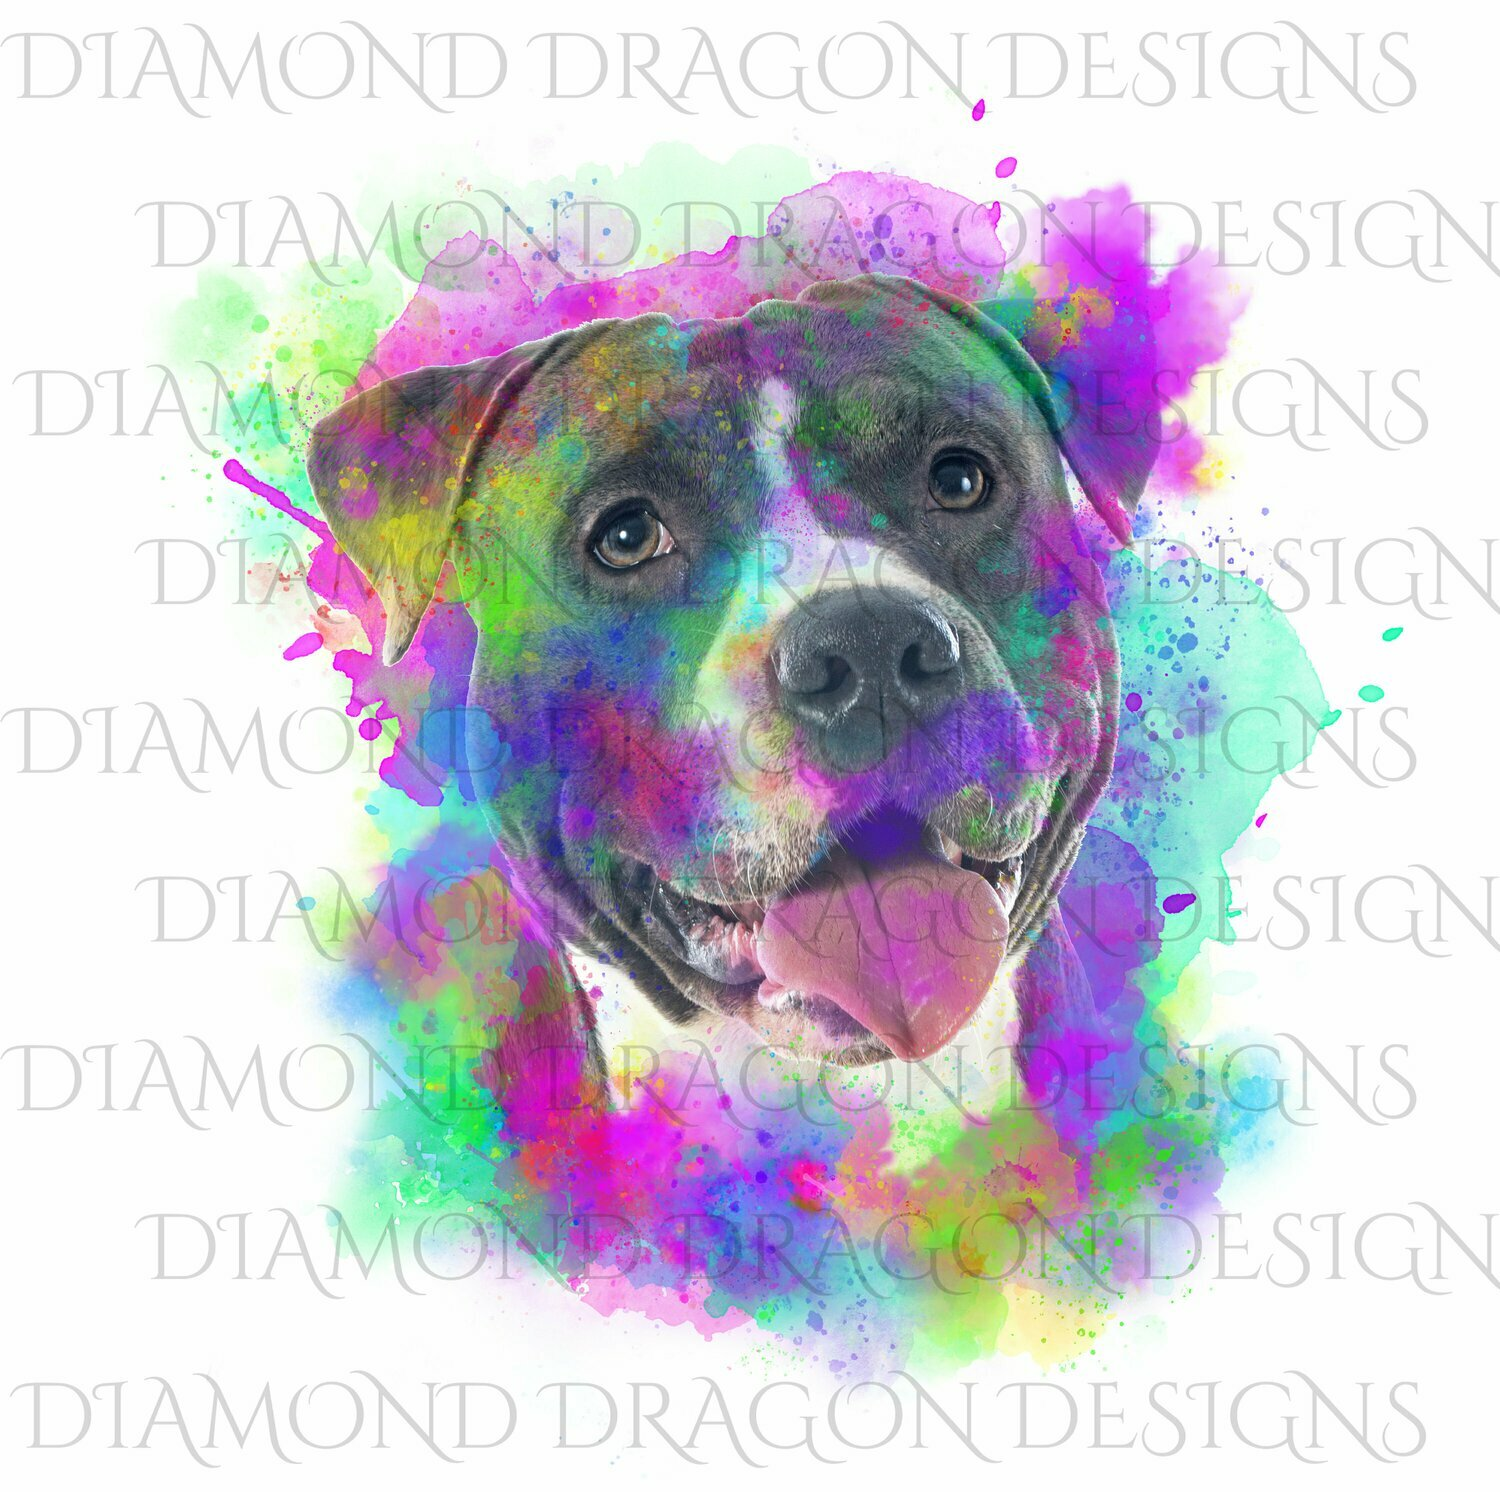 Dogs - Watercolor Pitbull, Rainbow Pitbull, Watercolor dog, Colorful, Blue Pitbull, Digital Image